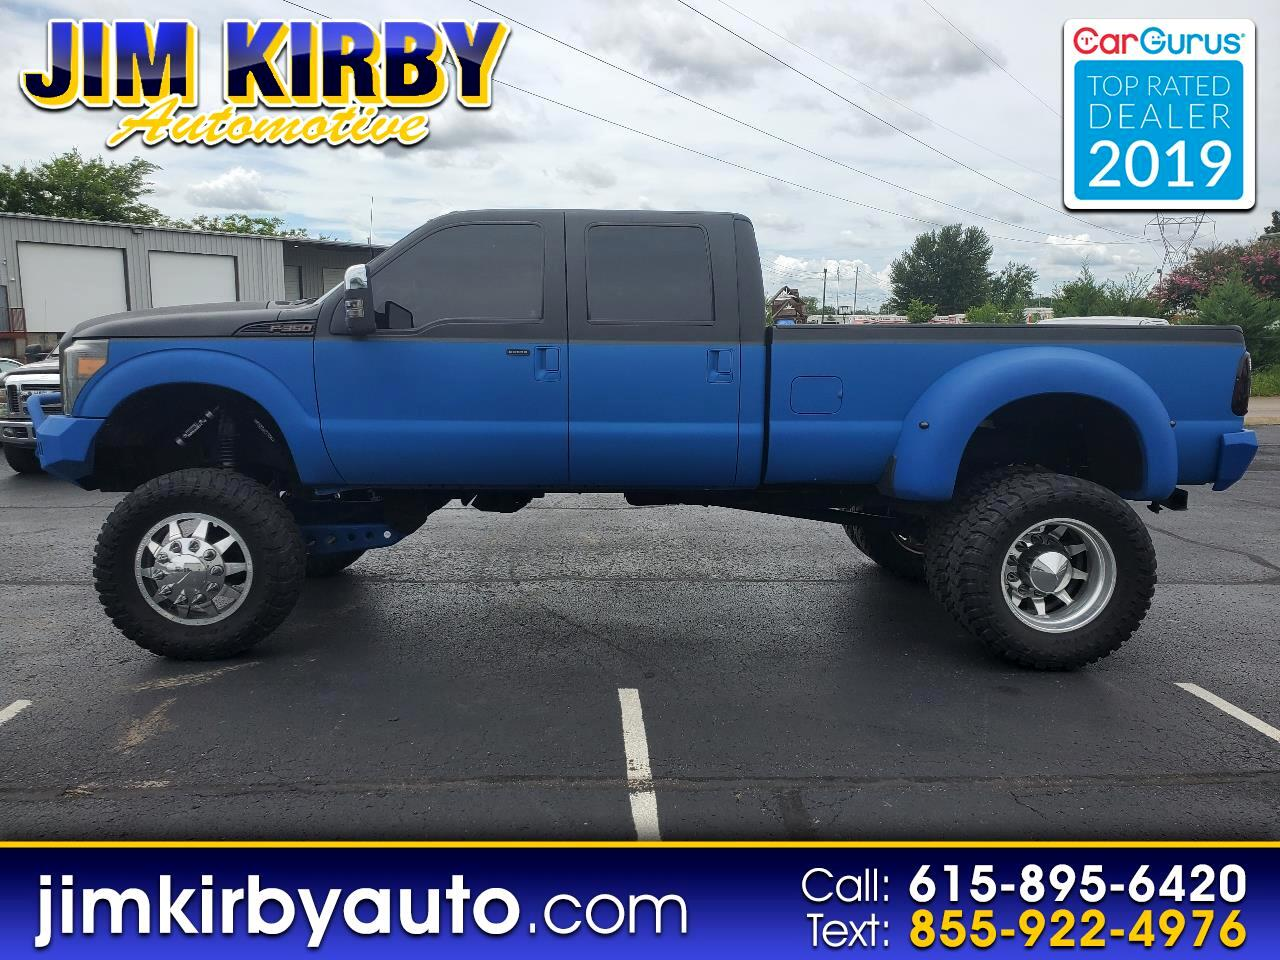 Ford F-350 SD King Ranch Crew Cab Long Bed DRW 4WD 2012